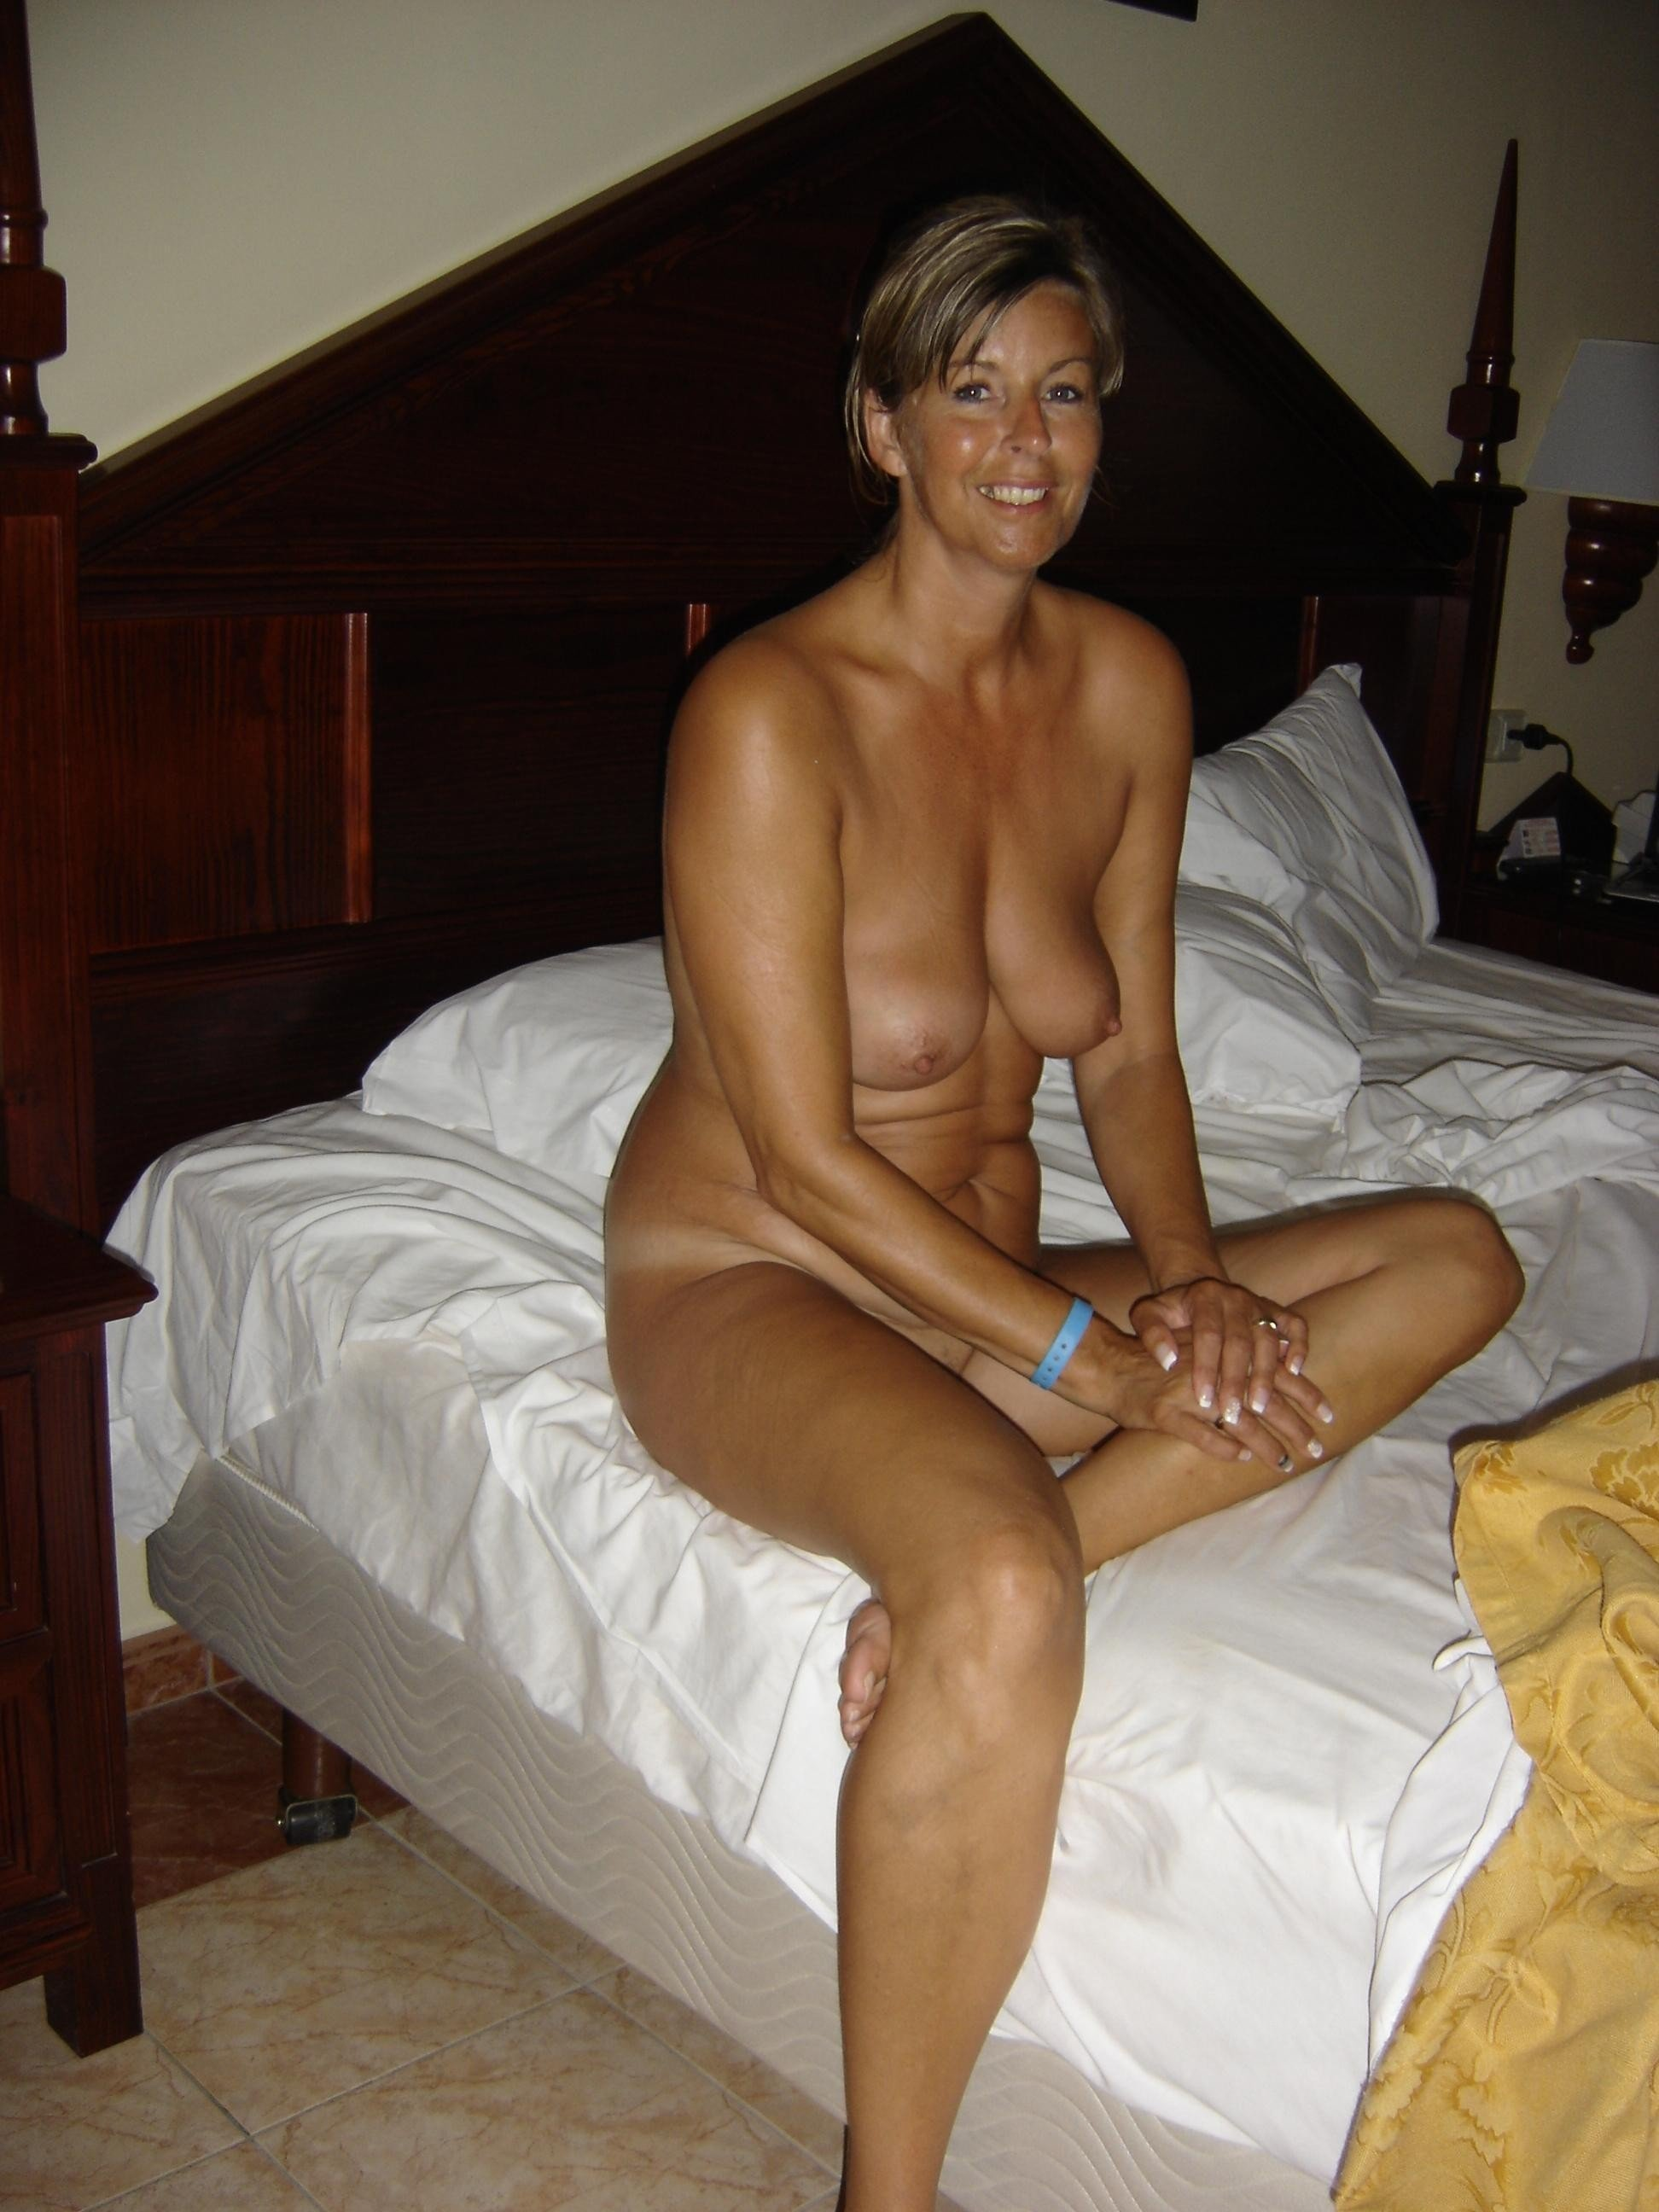 Naked milf on bed